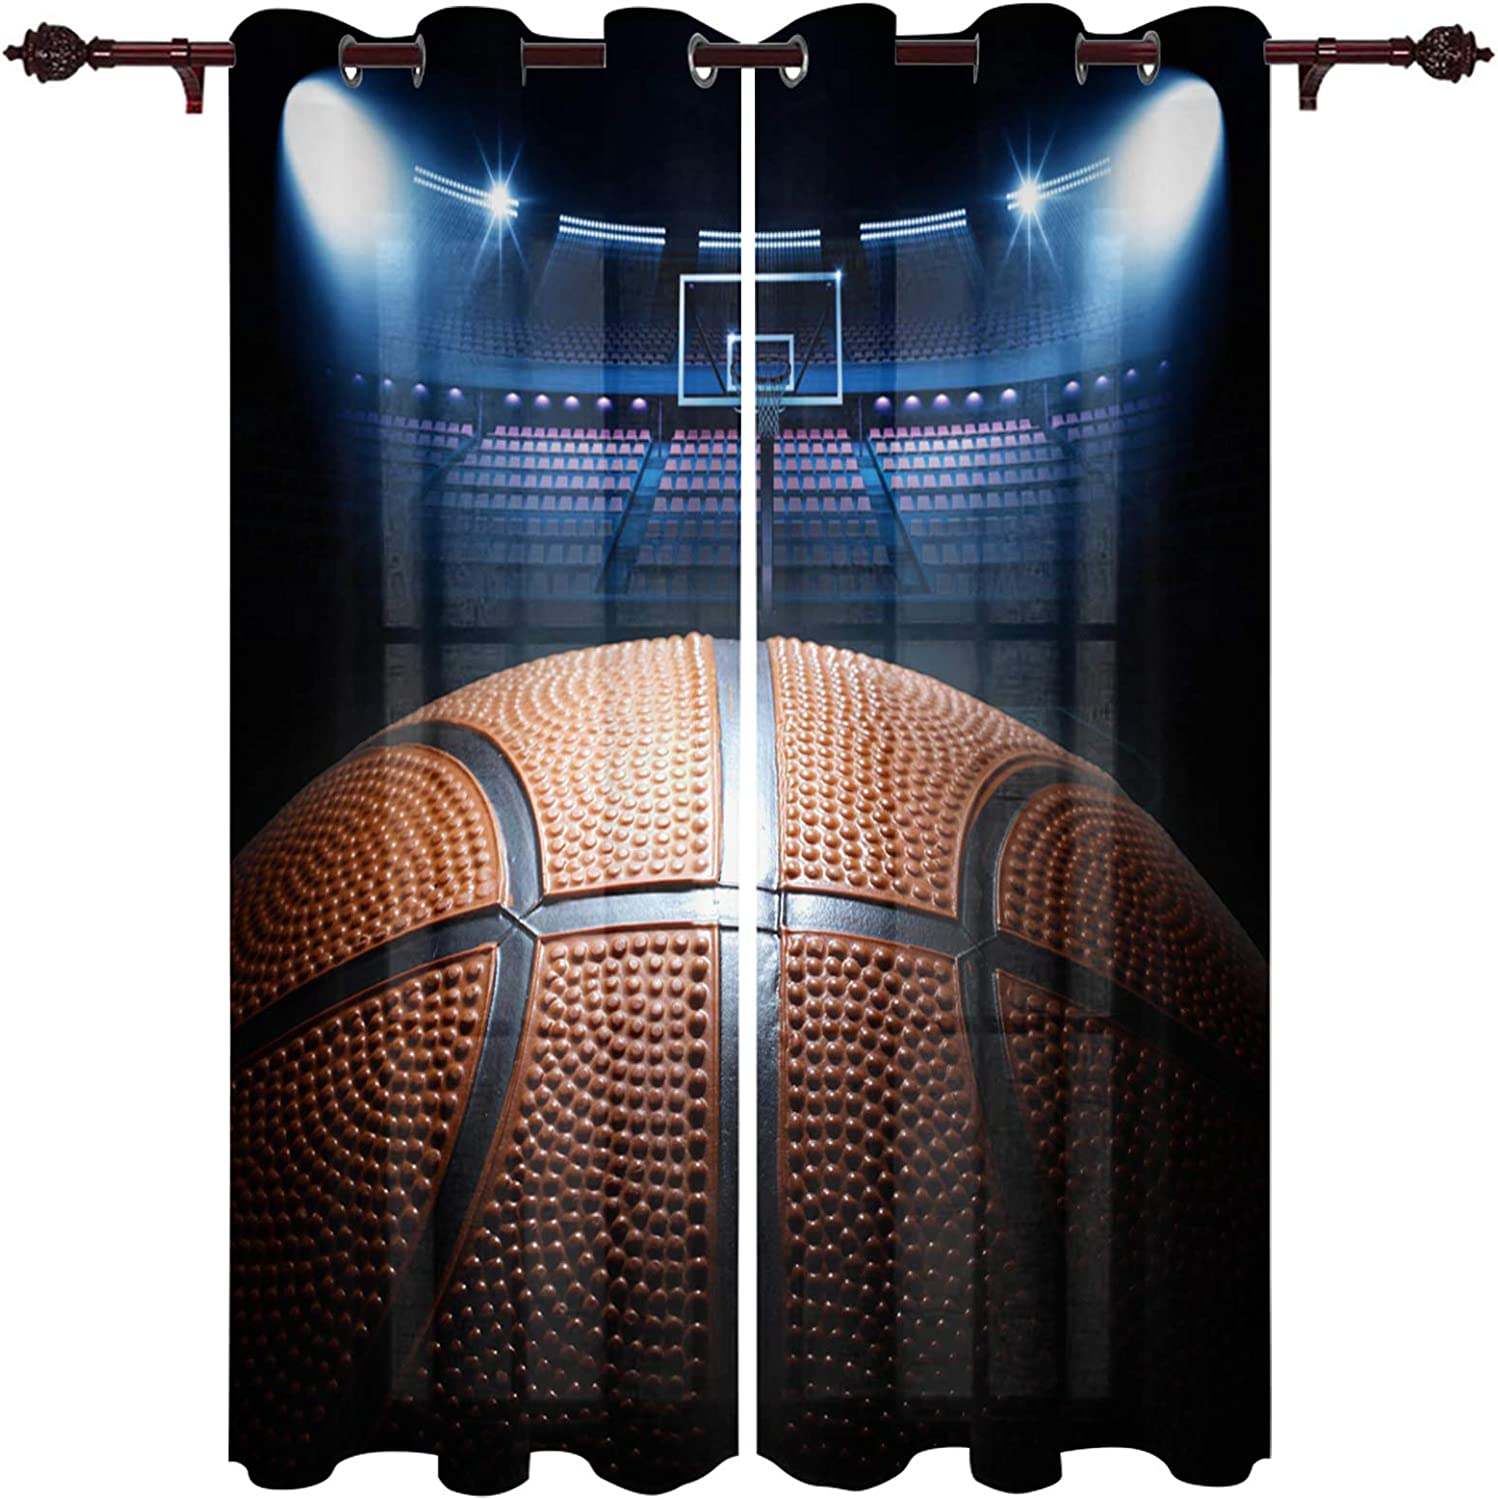 25% OFF Sale Infinidesign Basketball Window Curtains 2 Panels Assure Privacy